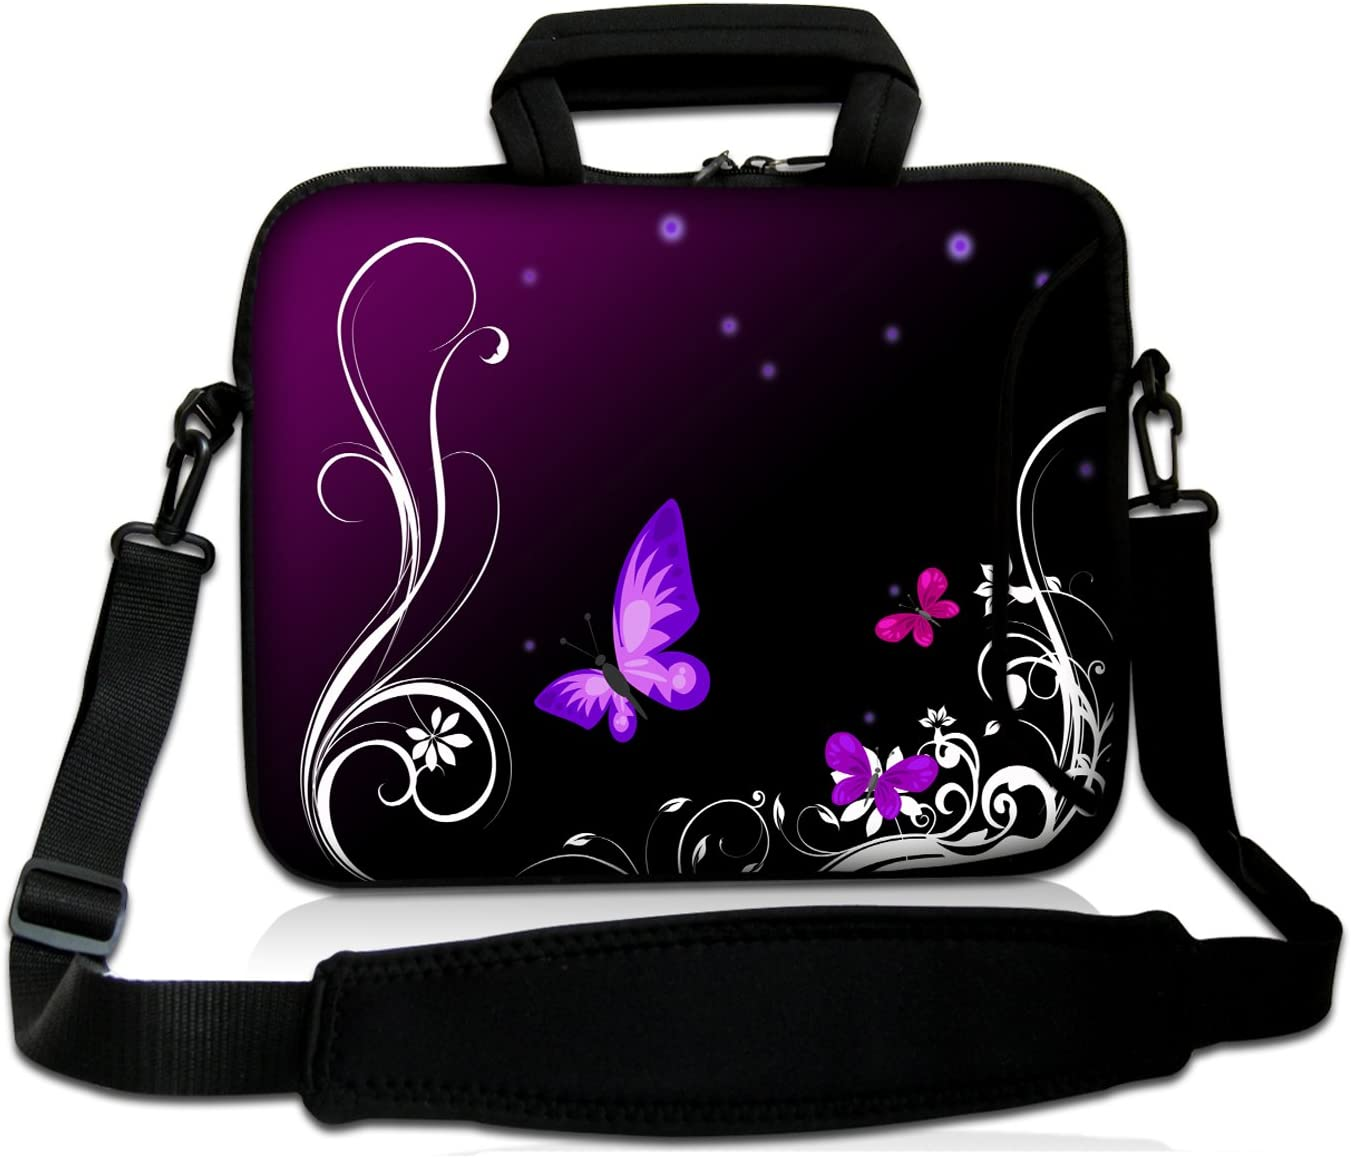 17 Inch Laptop Bag with Handle Water Resistant Many Blue Butterfly Laptop Briefcase for Working School Men /& Women